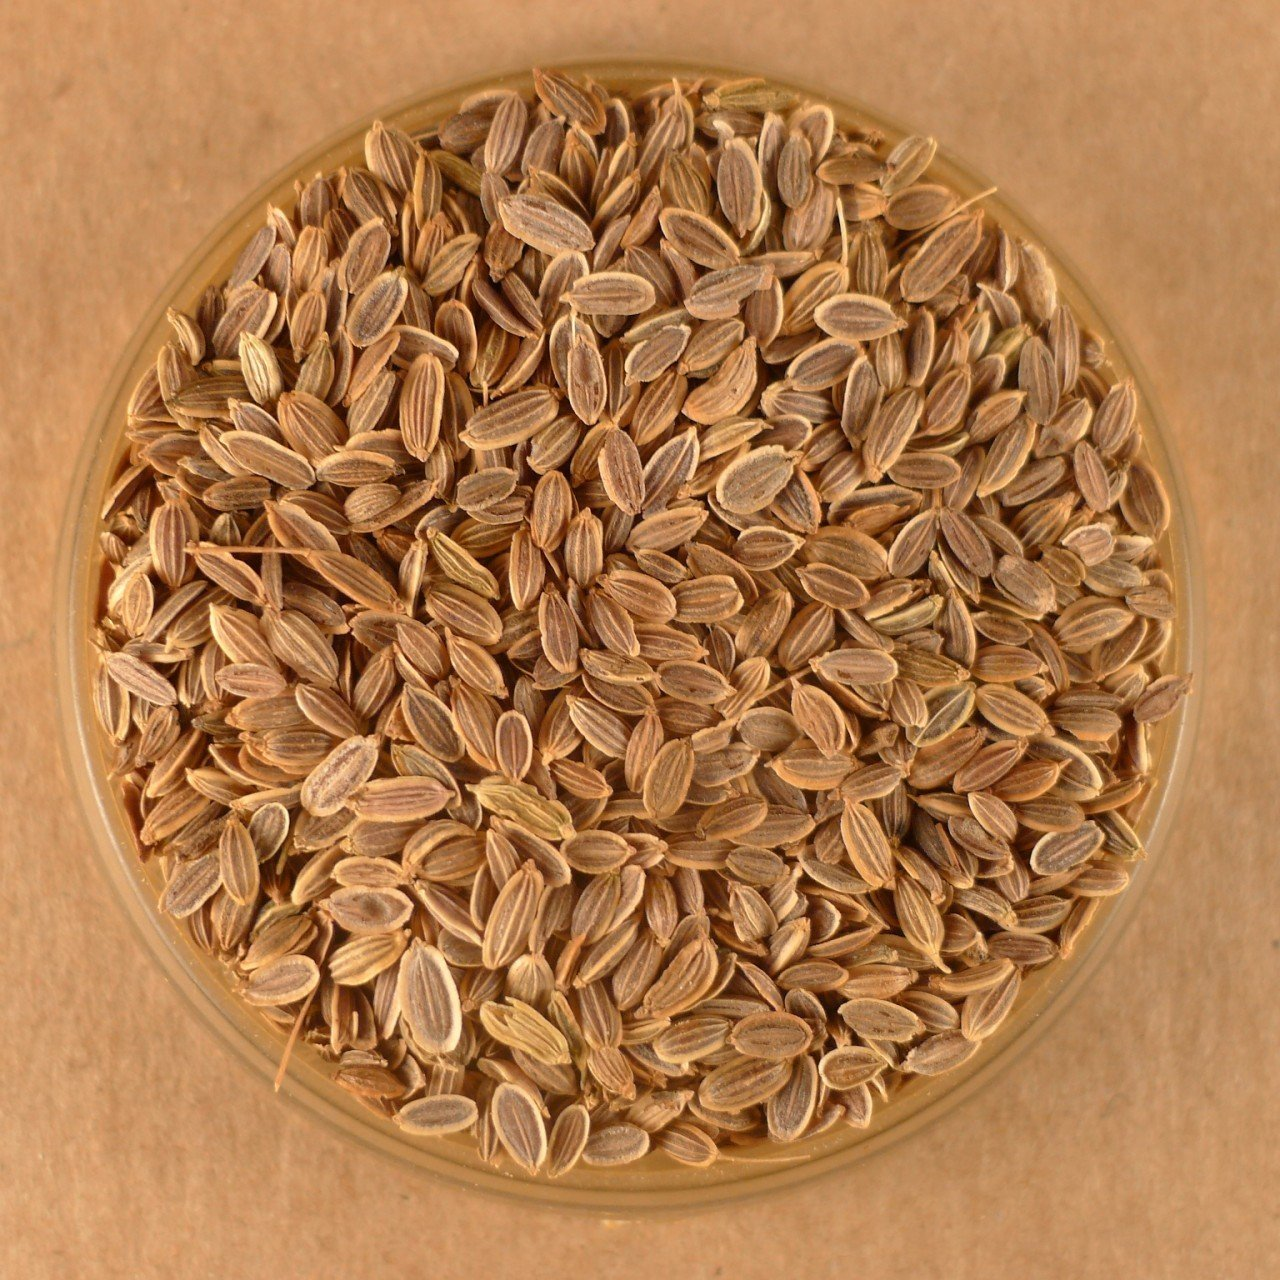 Dill Seed - Whole - 4 OZ